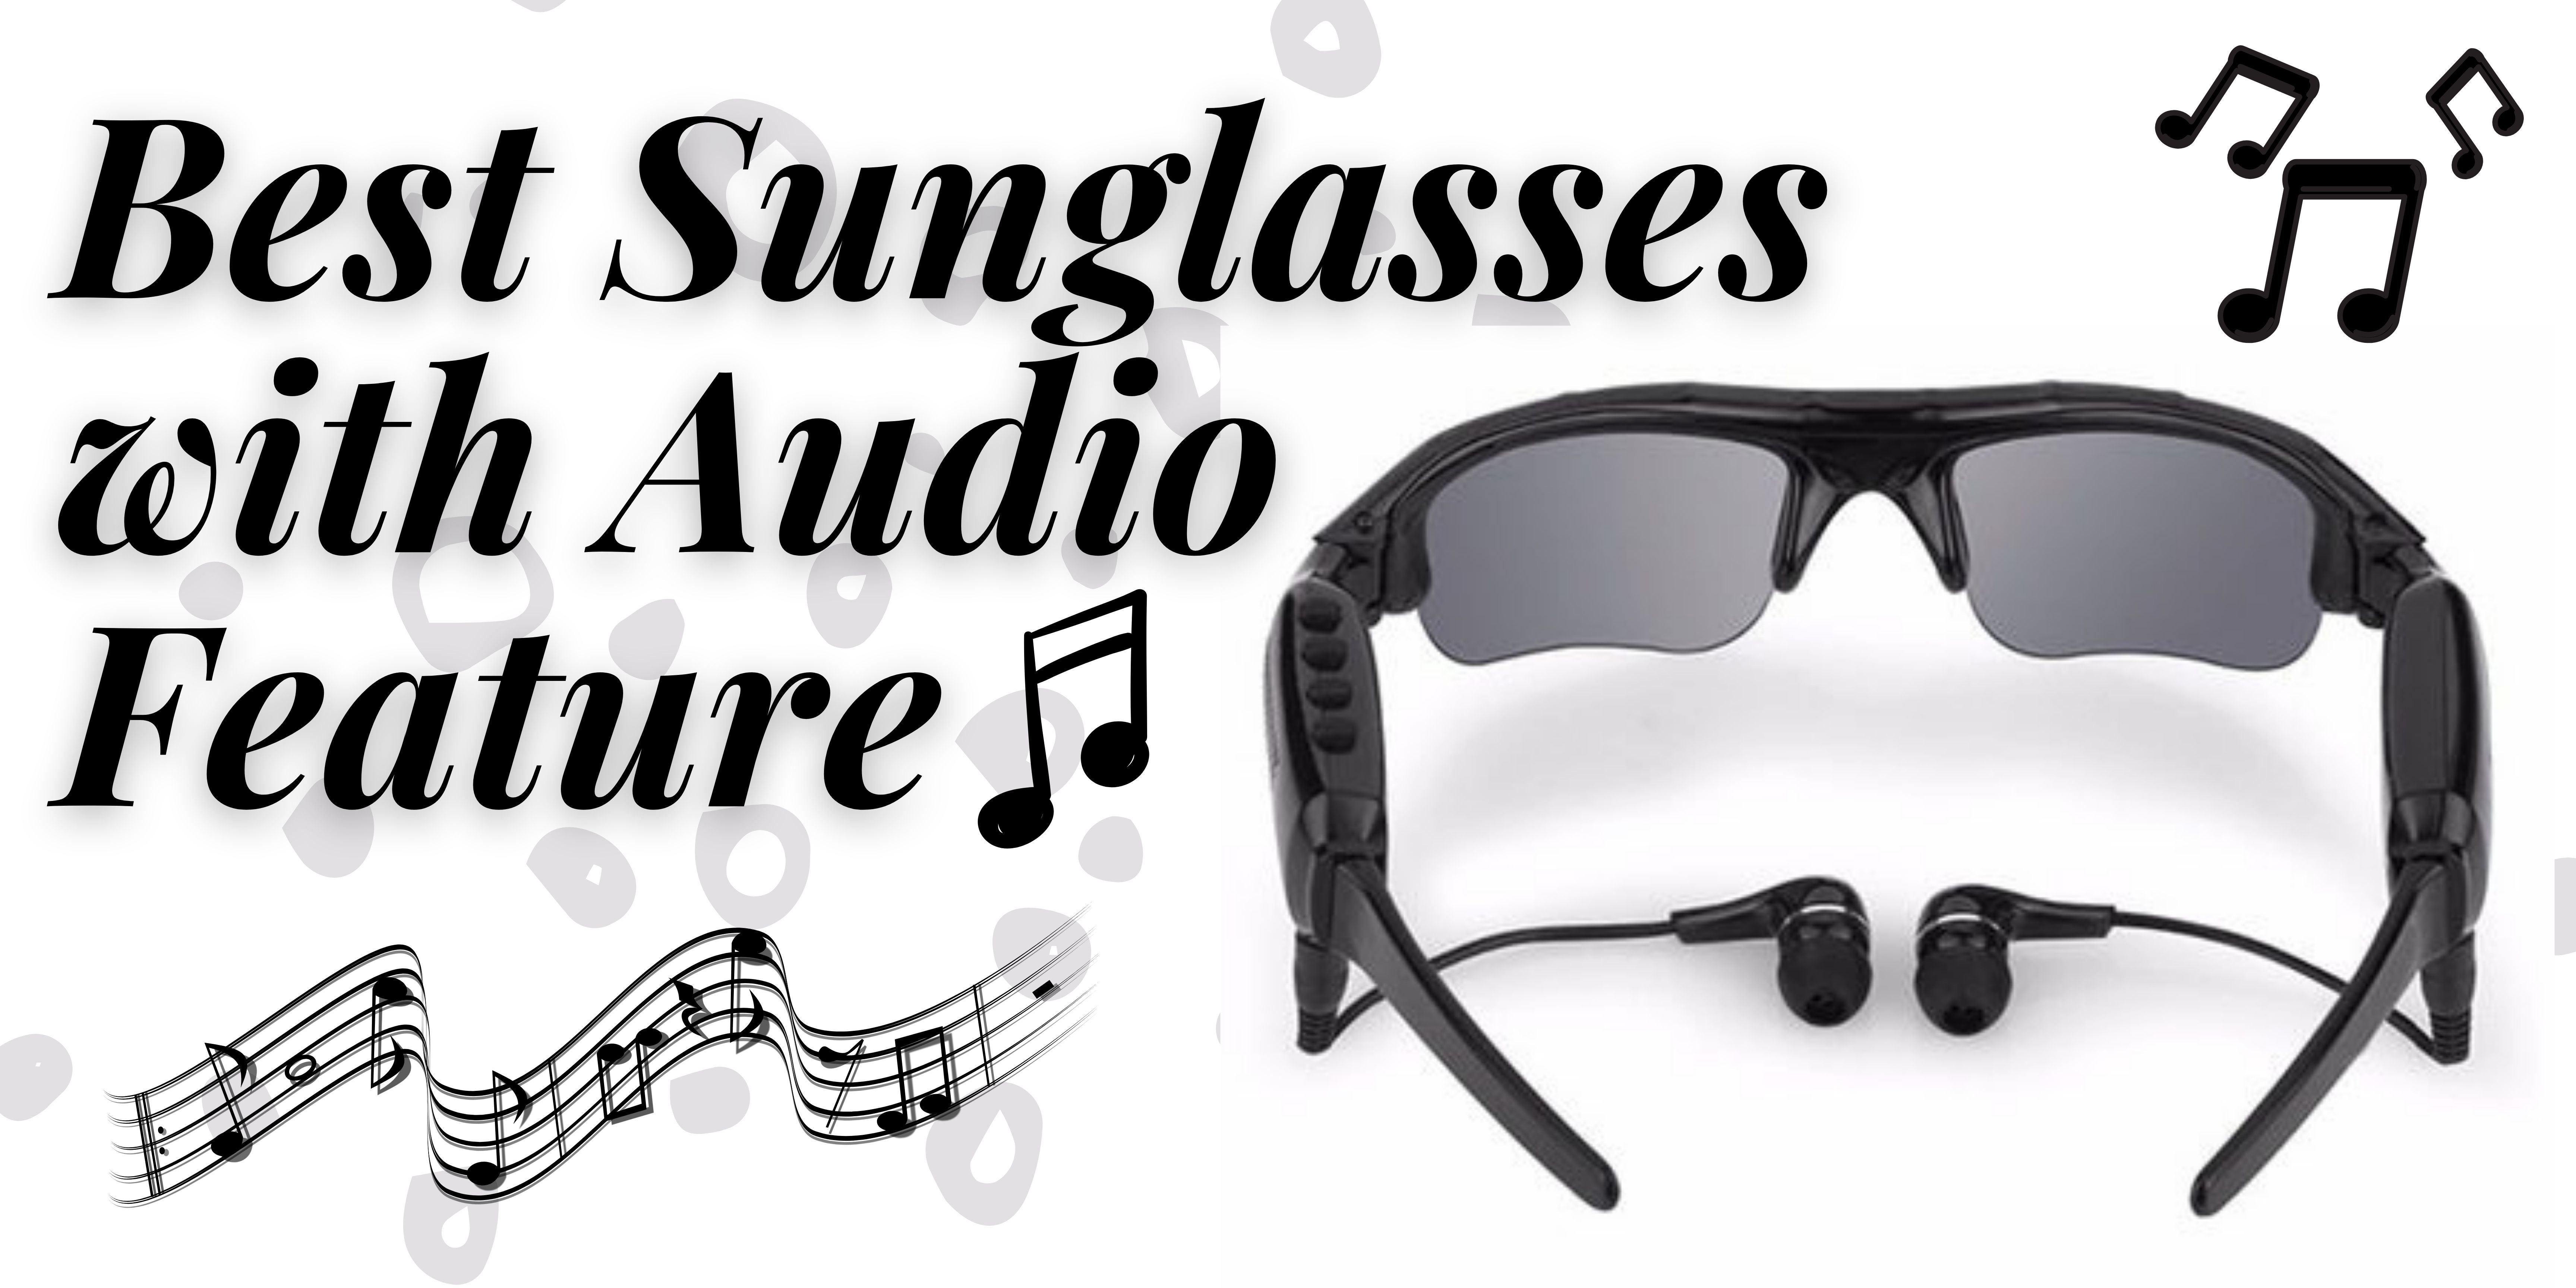 3 Best Sunglasses with Audio Feature